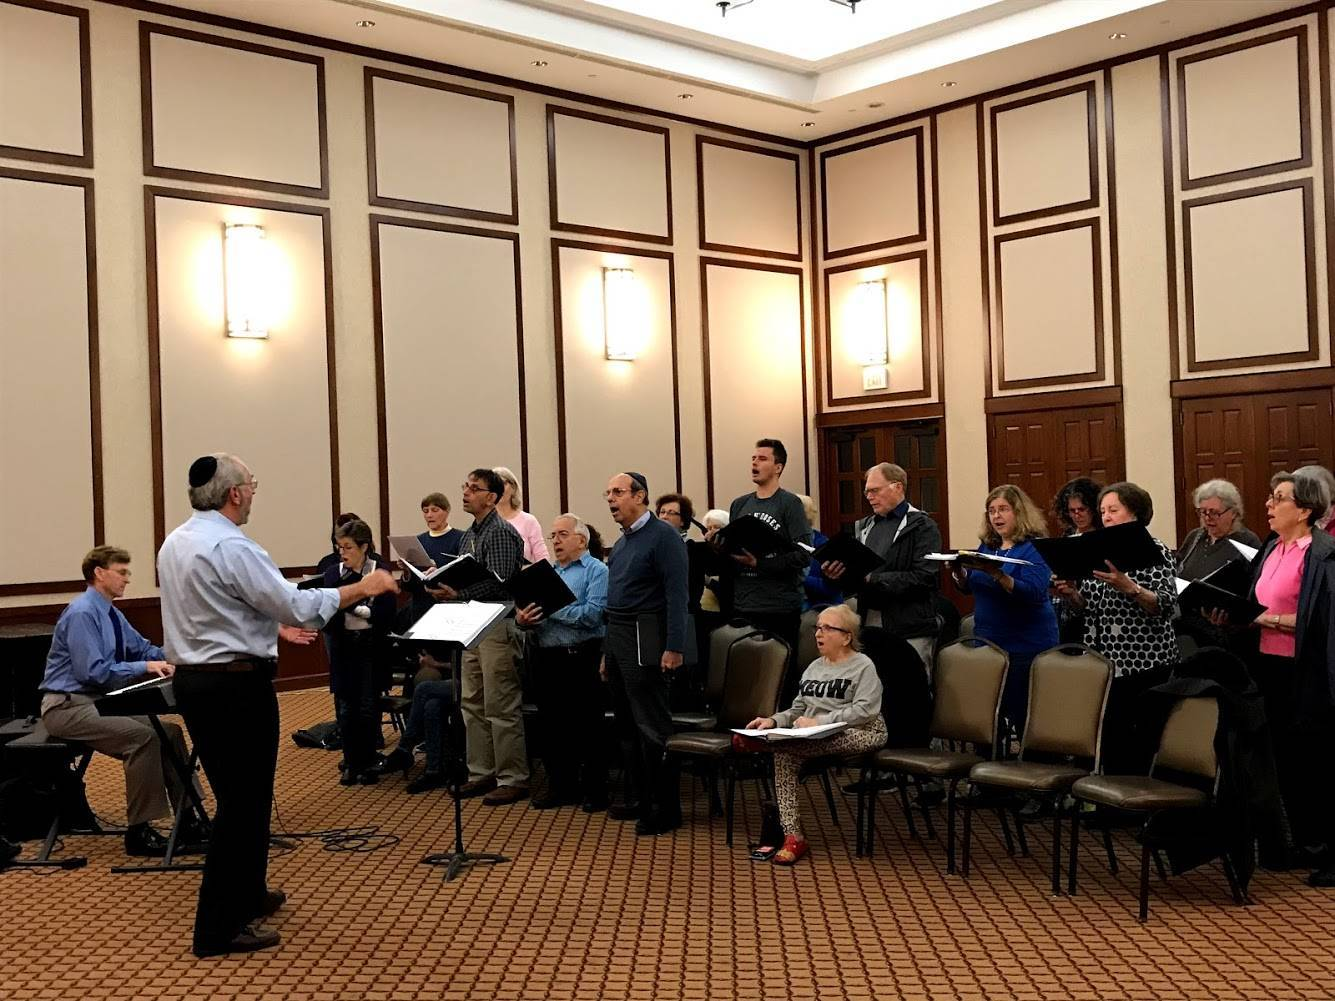 87553a14a9498e507f09_Cantor_Perry_Fine_leading_a_rehearsal_of_the_Voices_of_Harmony_Interfaith_Chorus.jpg